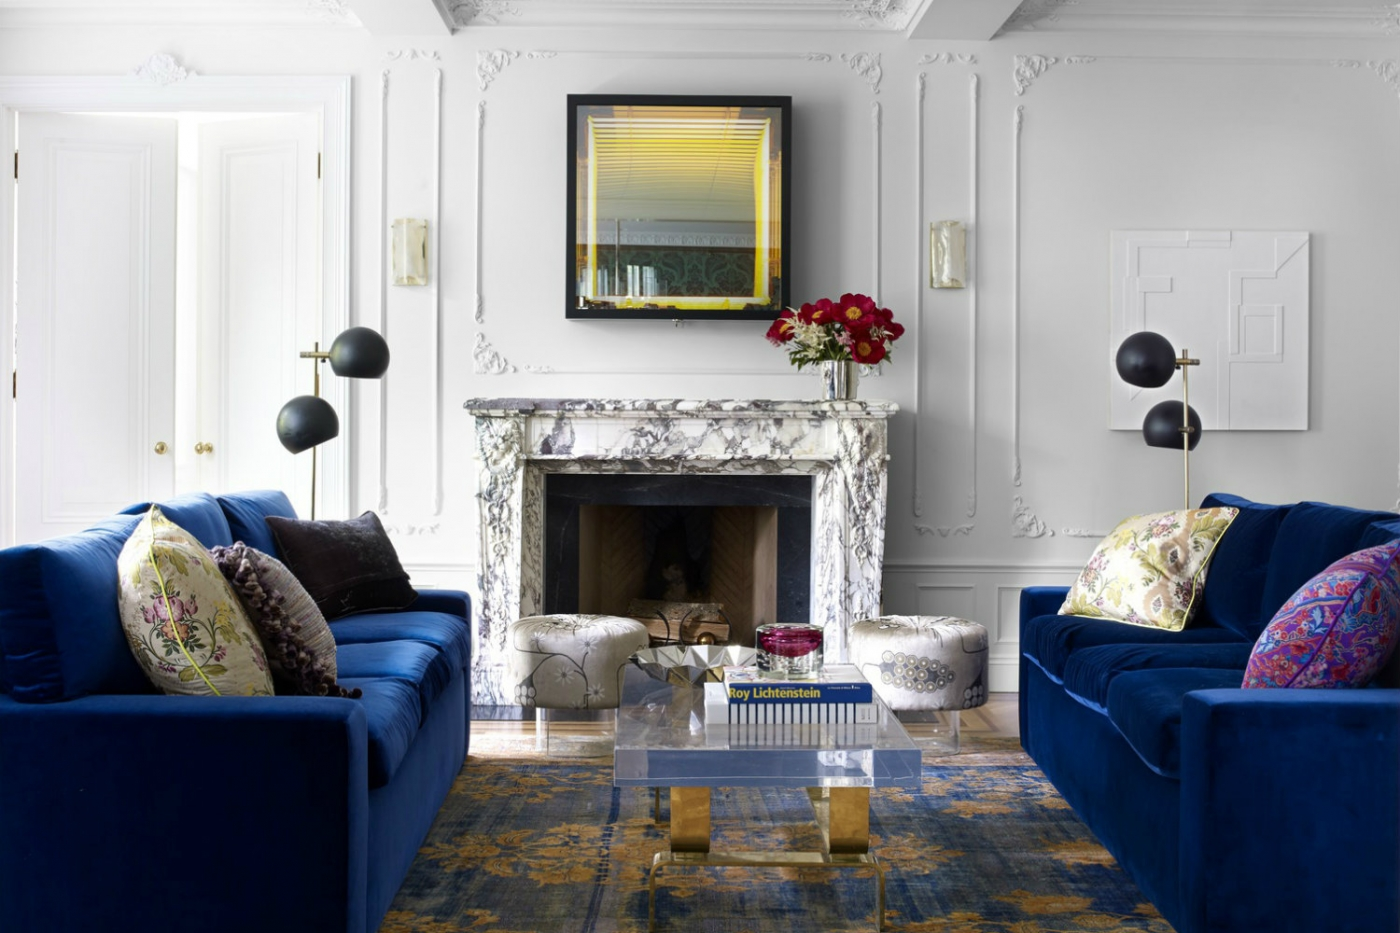 stunning award winning living room interiors | Top 11 Blue Living Room Designs by Best Interior Designers